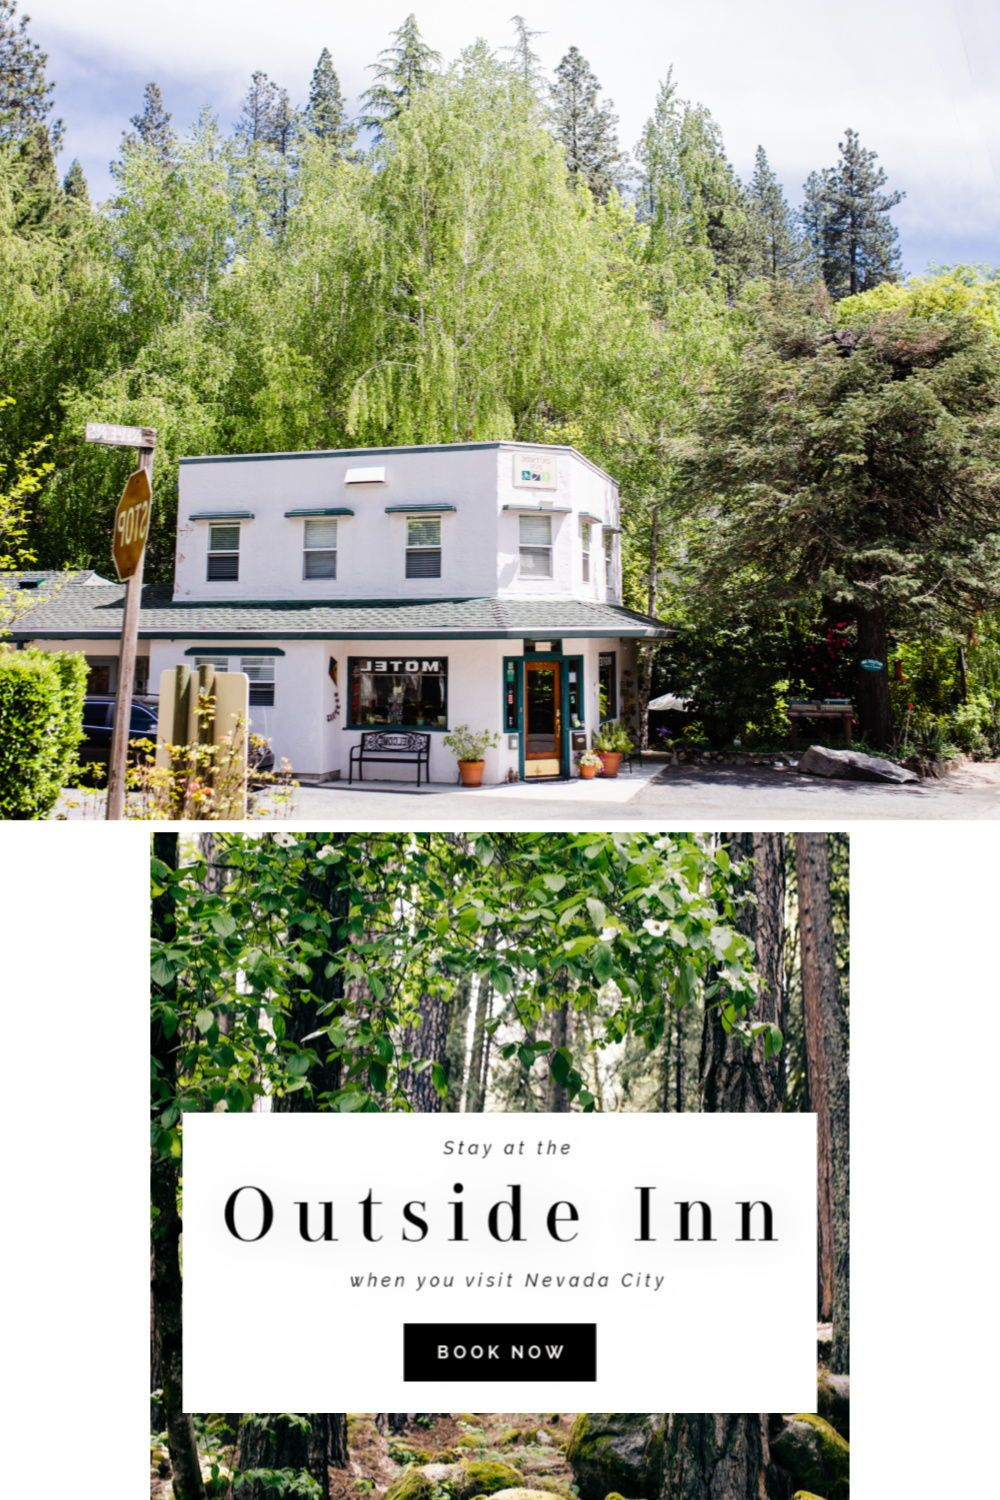 The Outside Inn Lodging In Nevada City California In 2020 Nevada City Visit Nevada Small Hotel